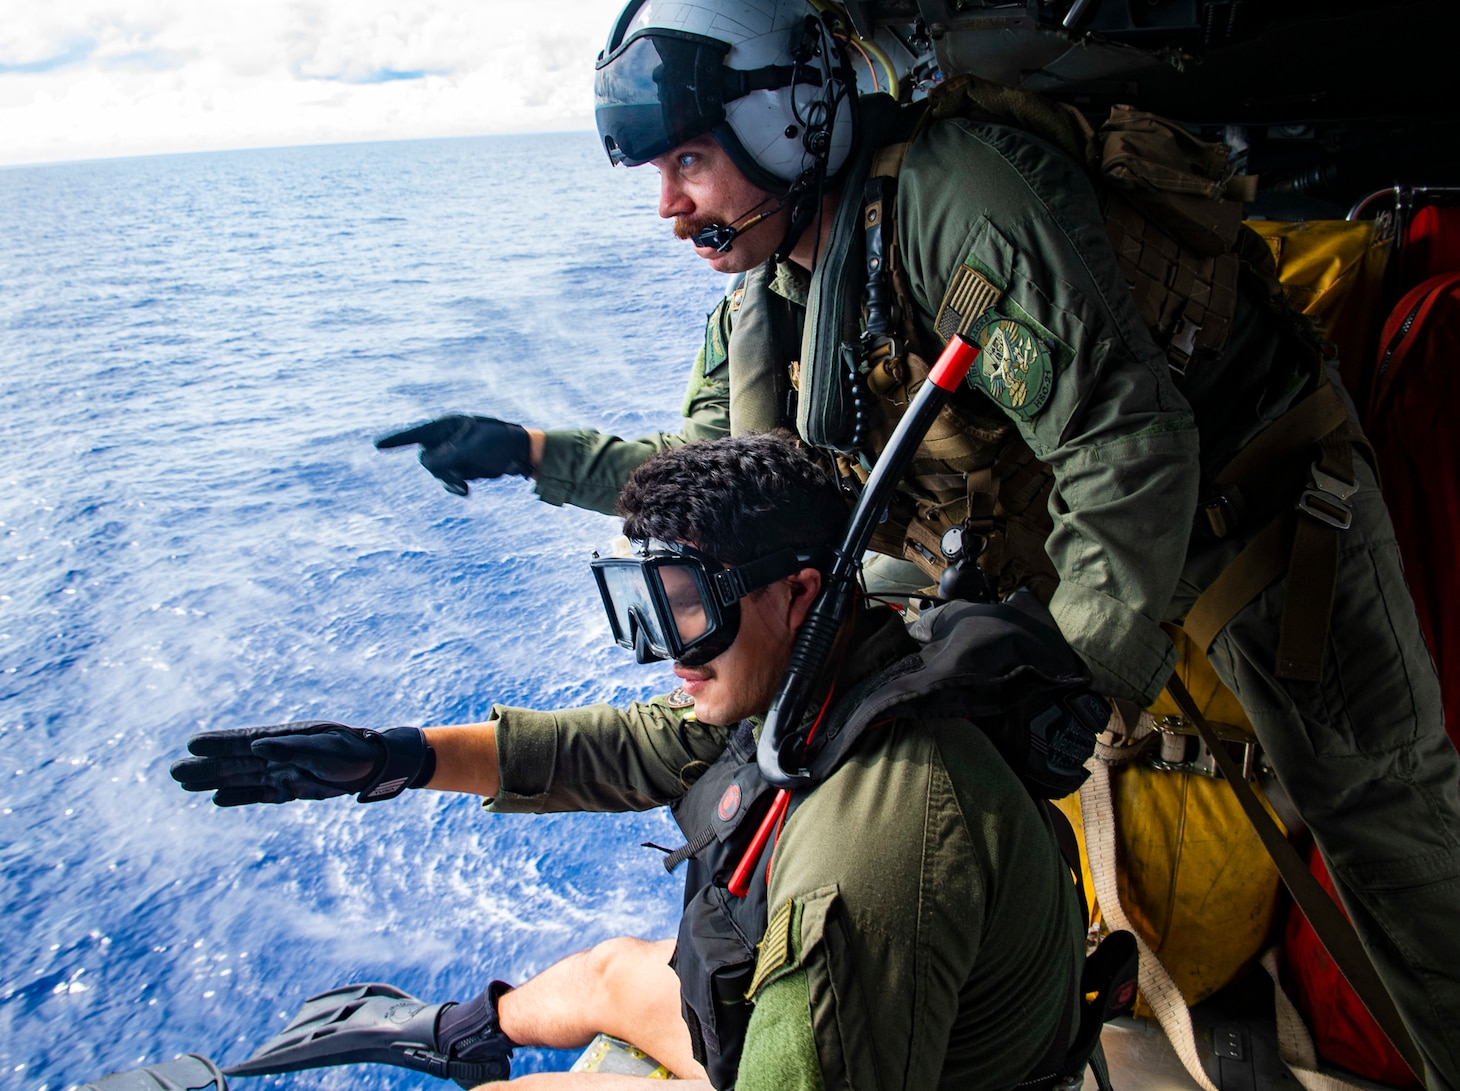 """Naval Aircrewmen (Helicopter) 1st Matthew Brickley from Peoria, Ariz. and Naval Aircrewmen 2nd Class Nicolas Lopez from Artesia, Calif., conducts a search and rescue (SAR) exercise inside of a MH-60S Seahawk helicopter assigned to the """"Blackjacks"""" of Helicopter Sea Combat Squadron (HSC) 21 aboard the Independence-variant littoral combat ship USS Tulsa (LCS 16), Sep. 05, 2021."""